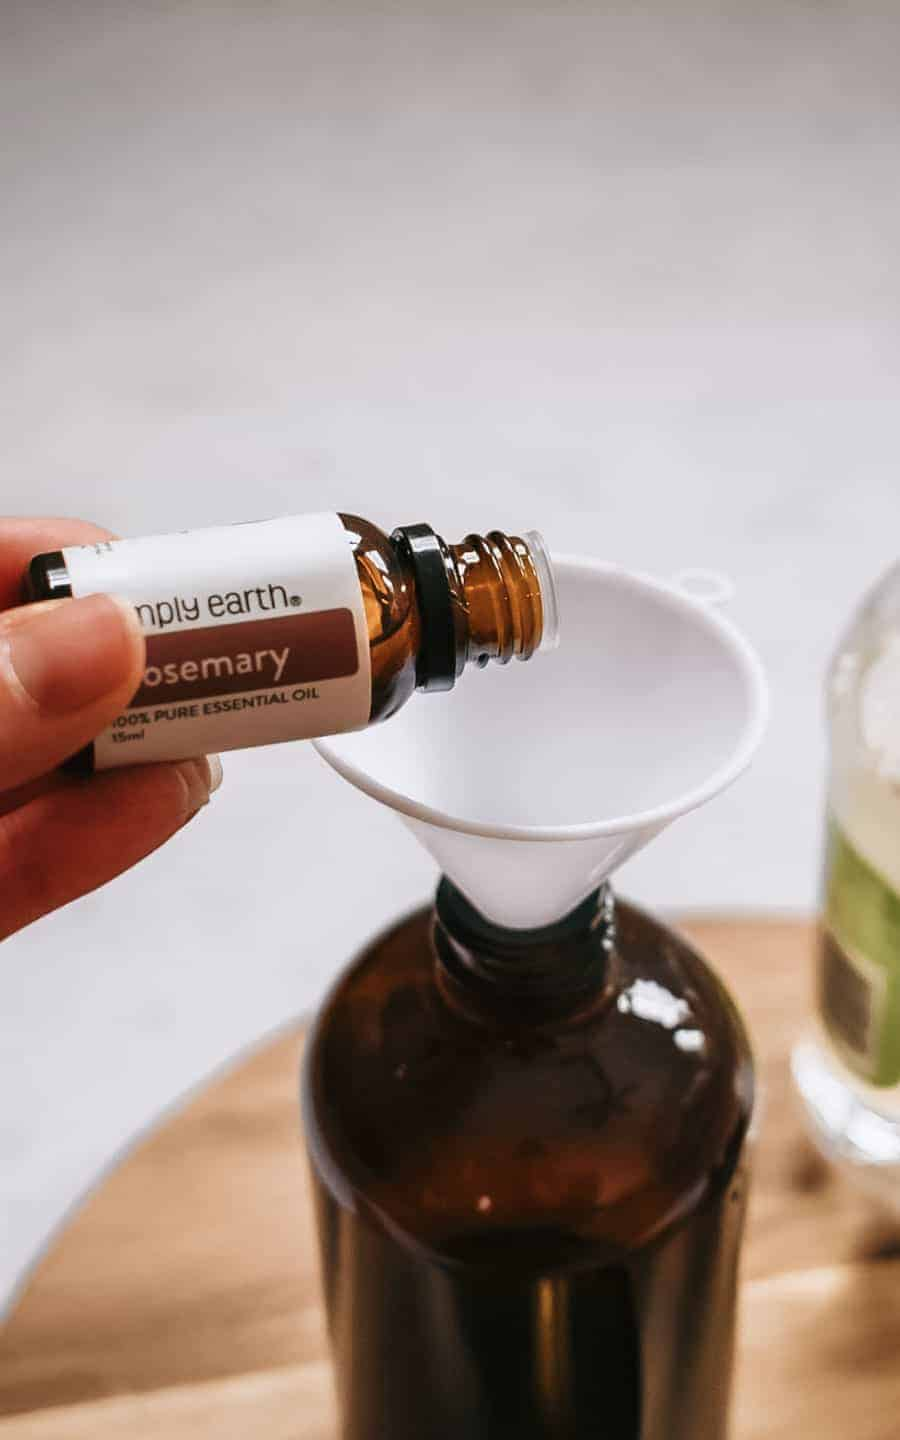 Person pouring rosemary essential oil into brown glass bottle